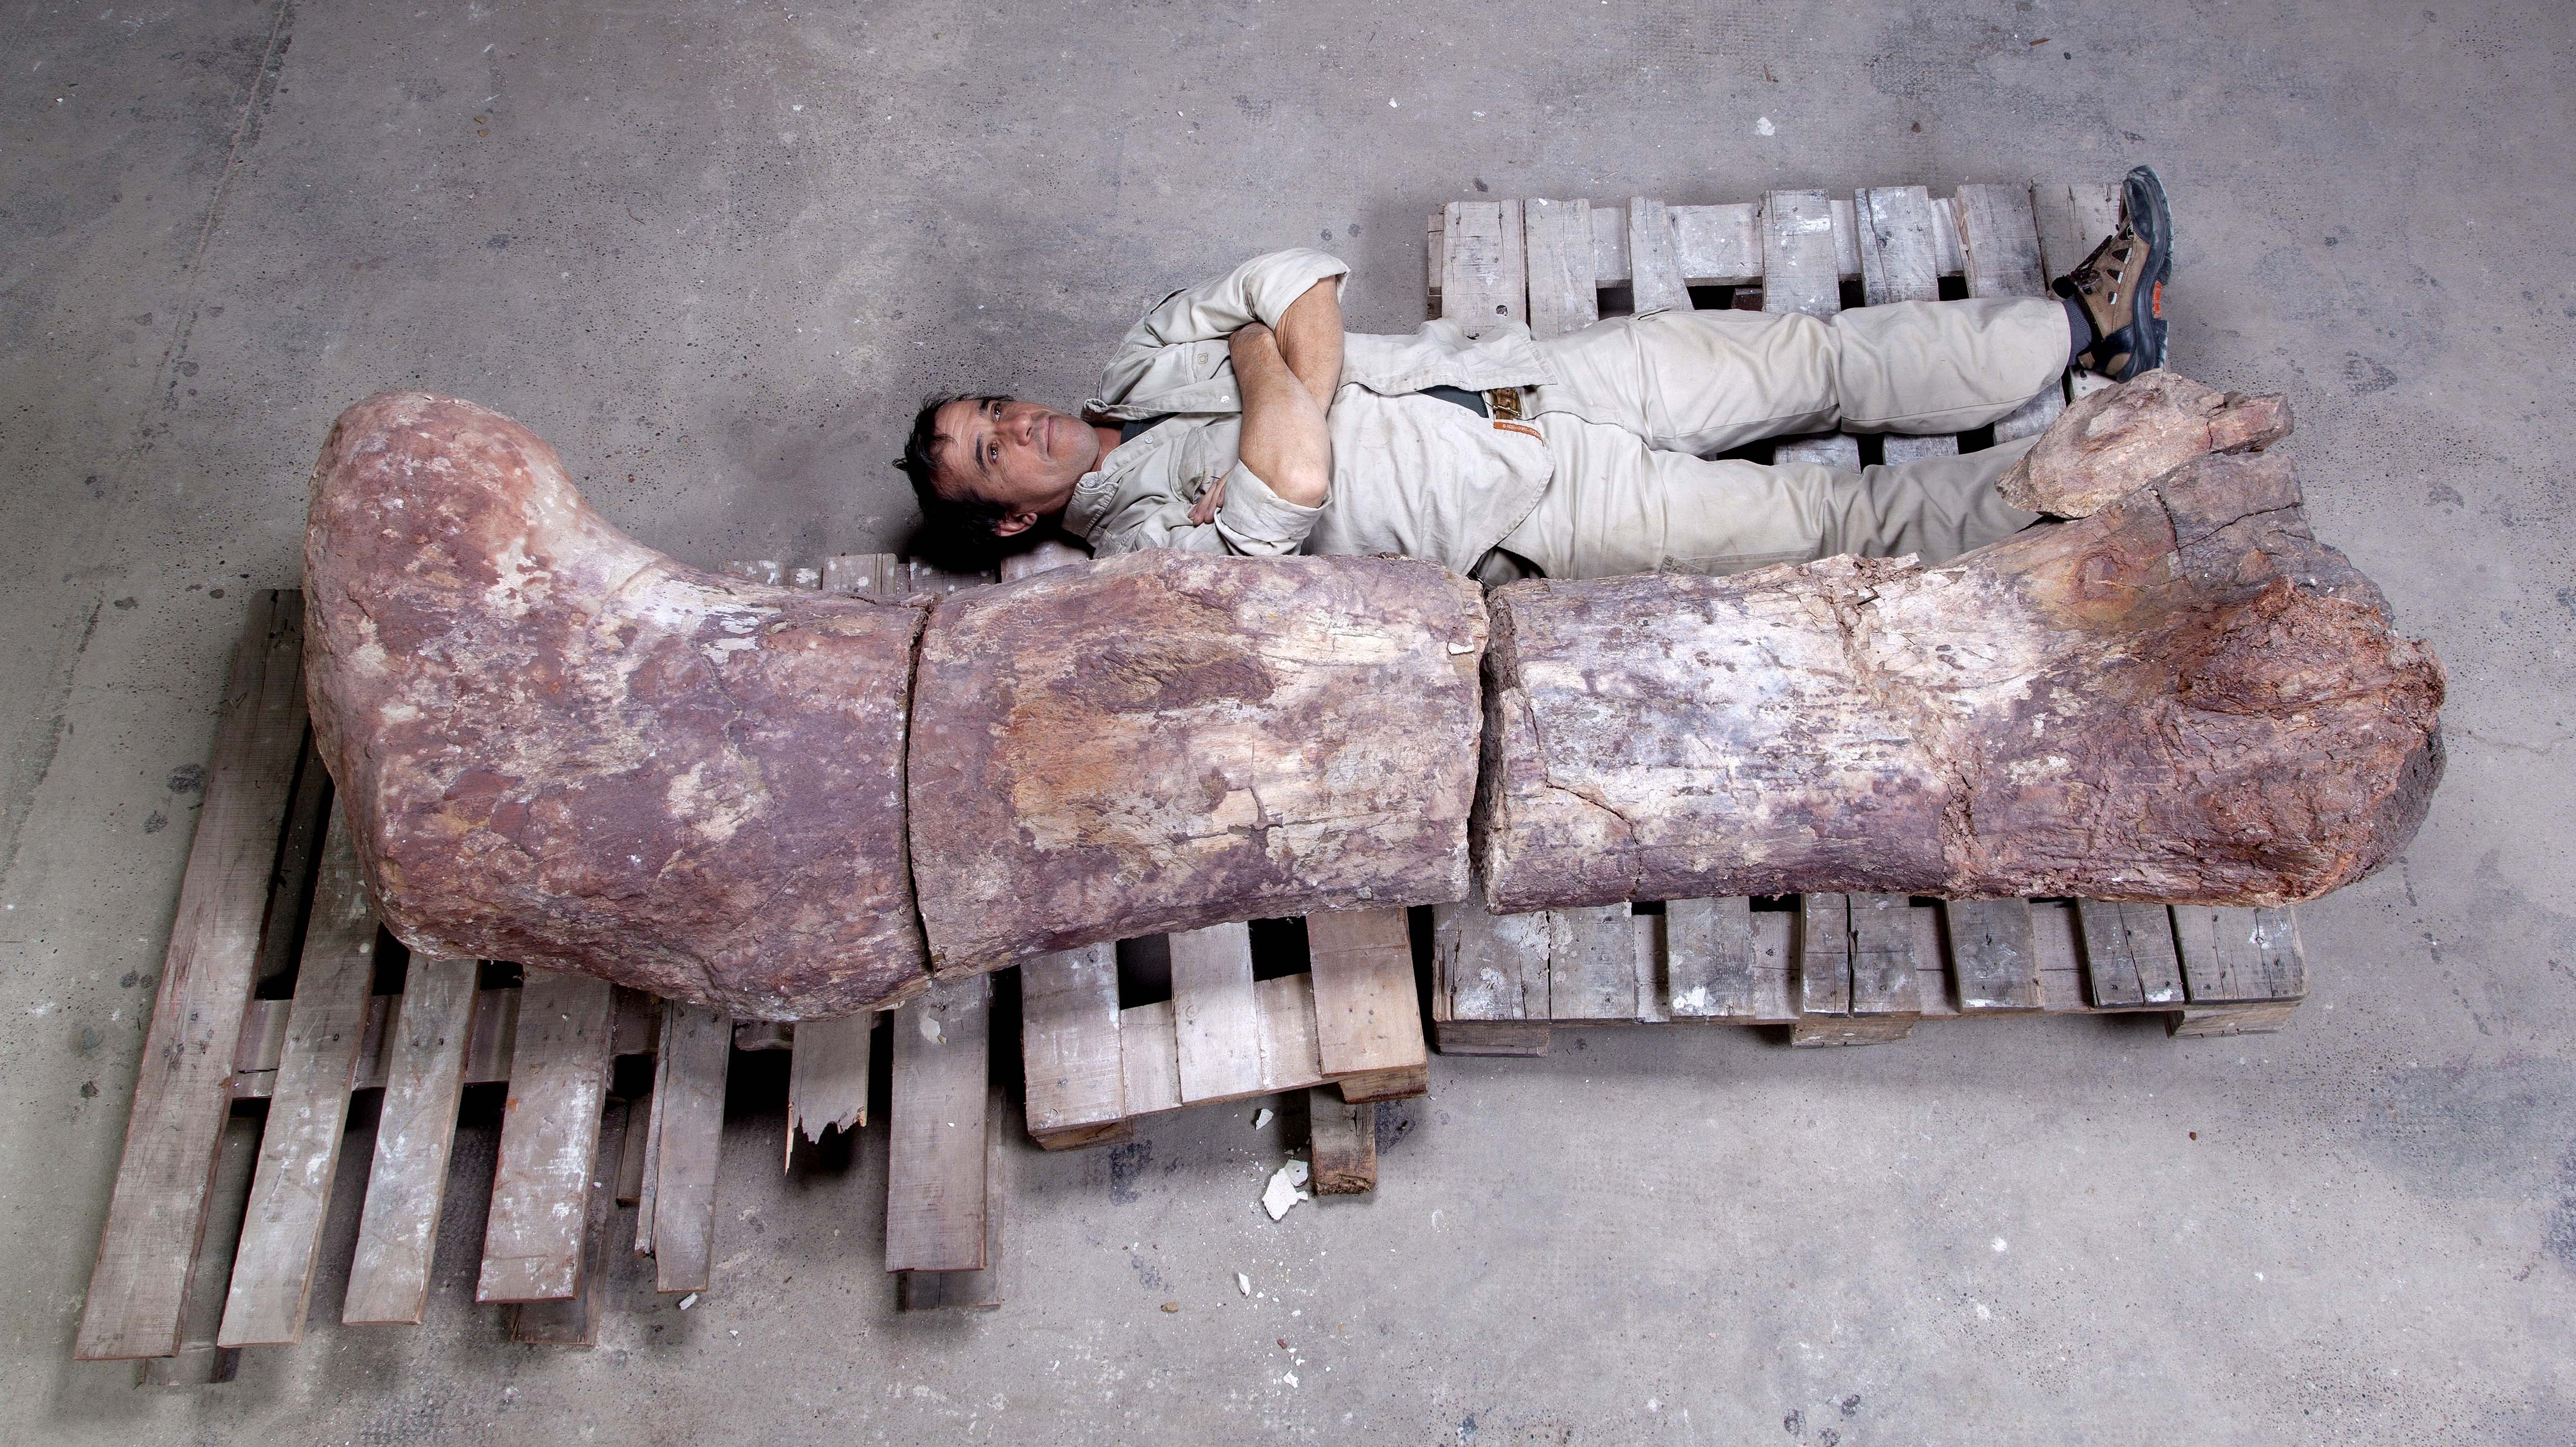 A Giant Among Dinosaurs, Discovered In Argentina